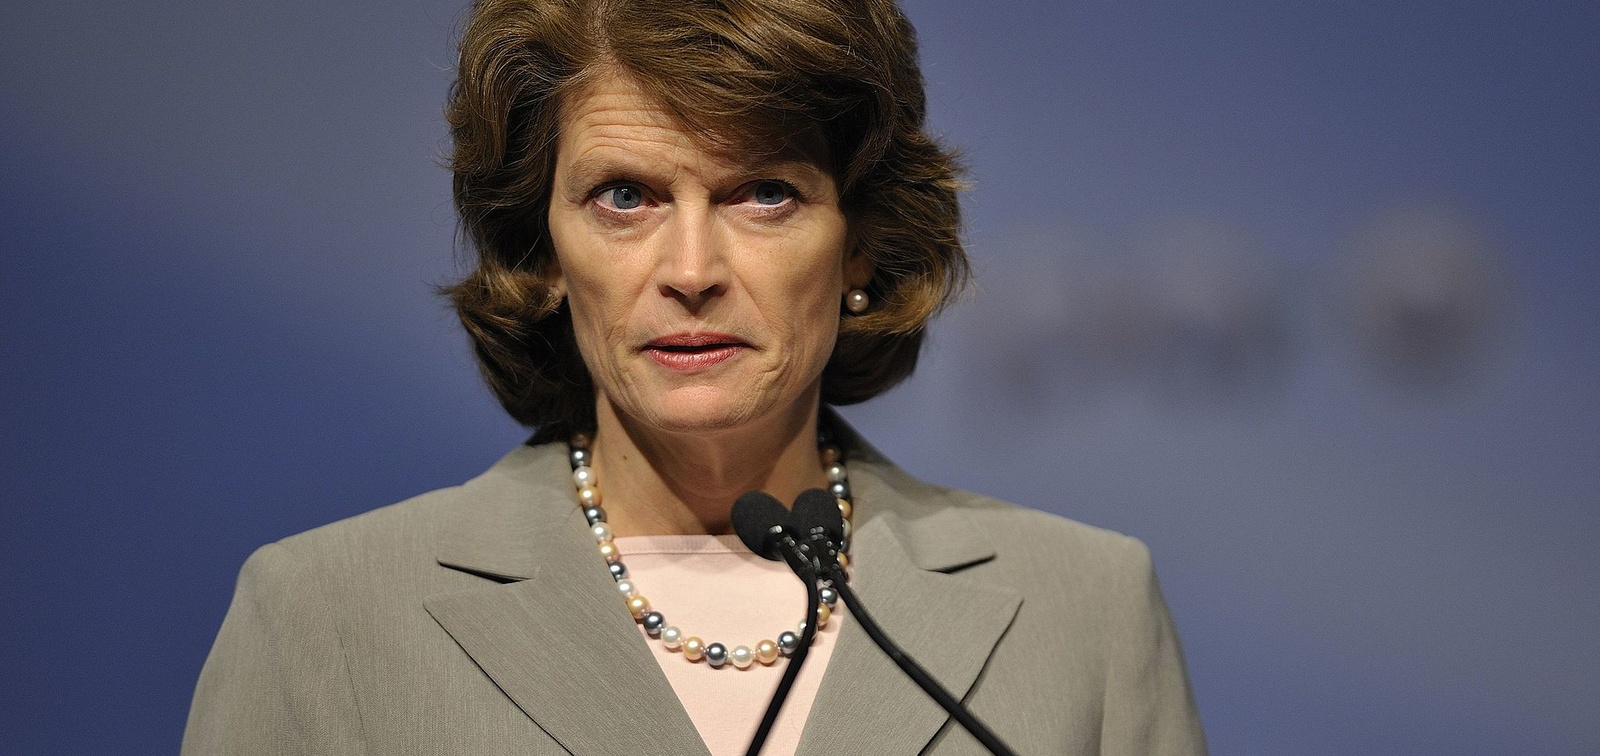 Comprehensive energy bill could see Senate floor as early as July: Murkowski chief counsel